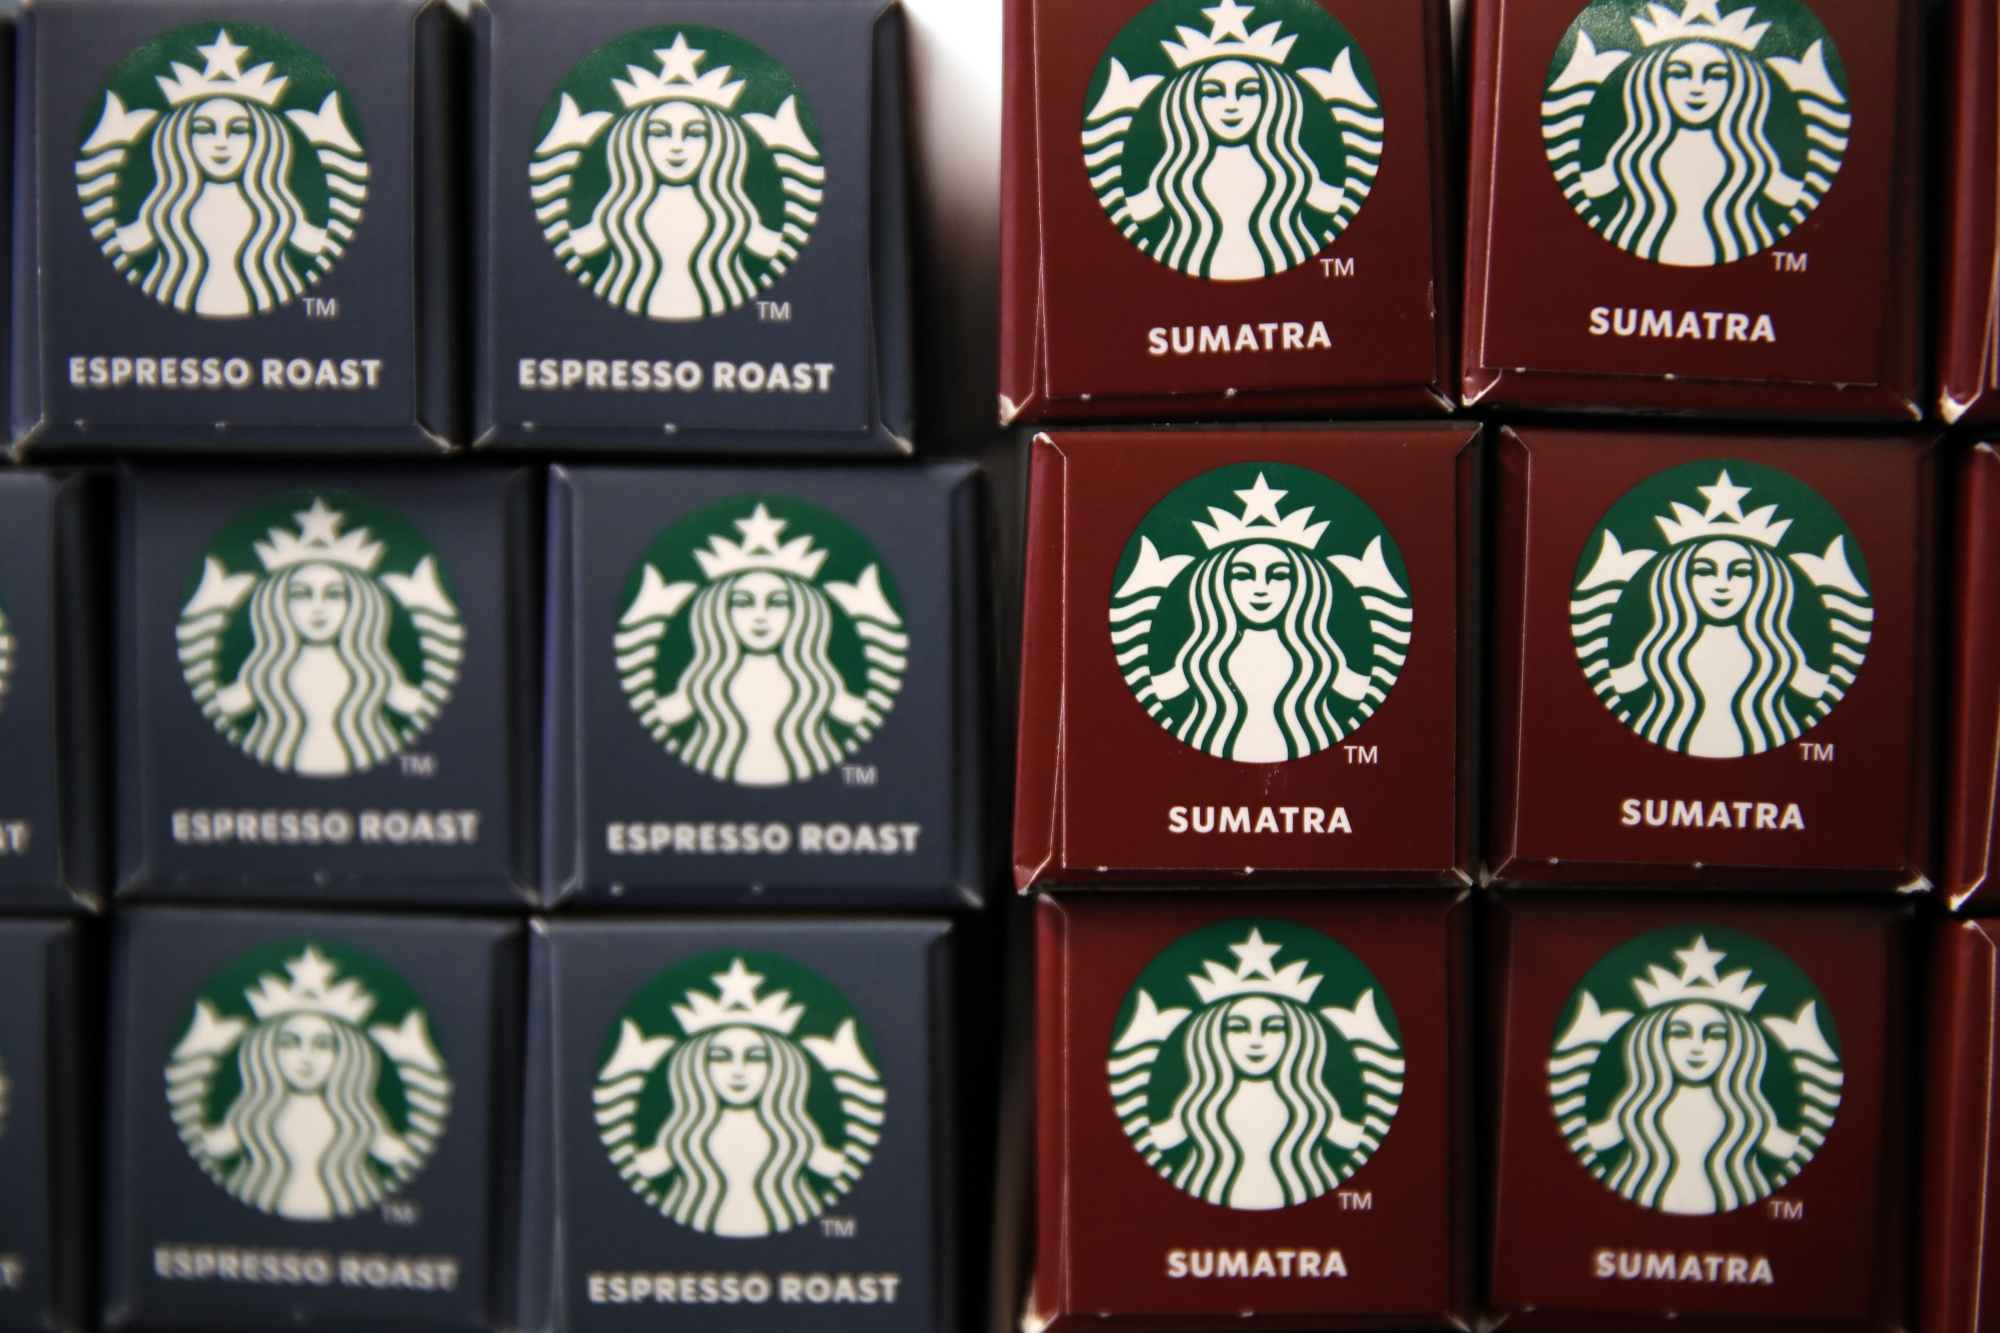 Nestle to Start Selling Starbucks Coffee Products in China - Bloomberg